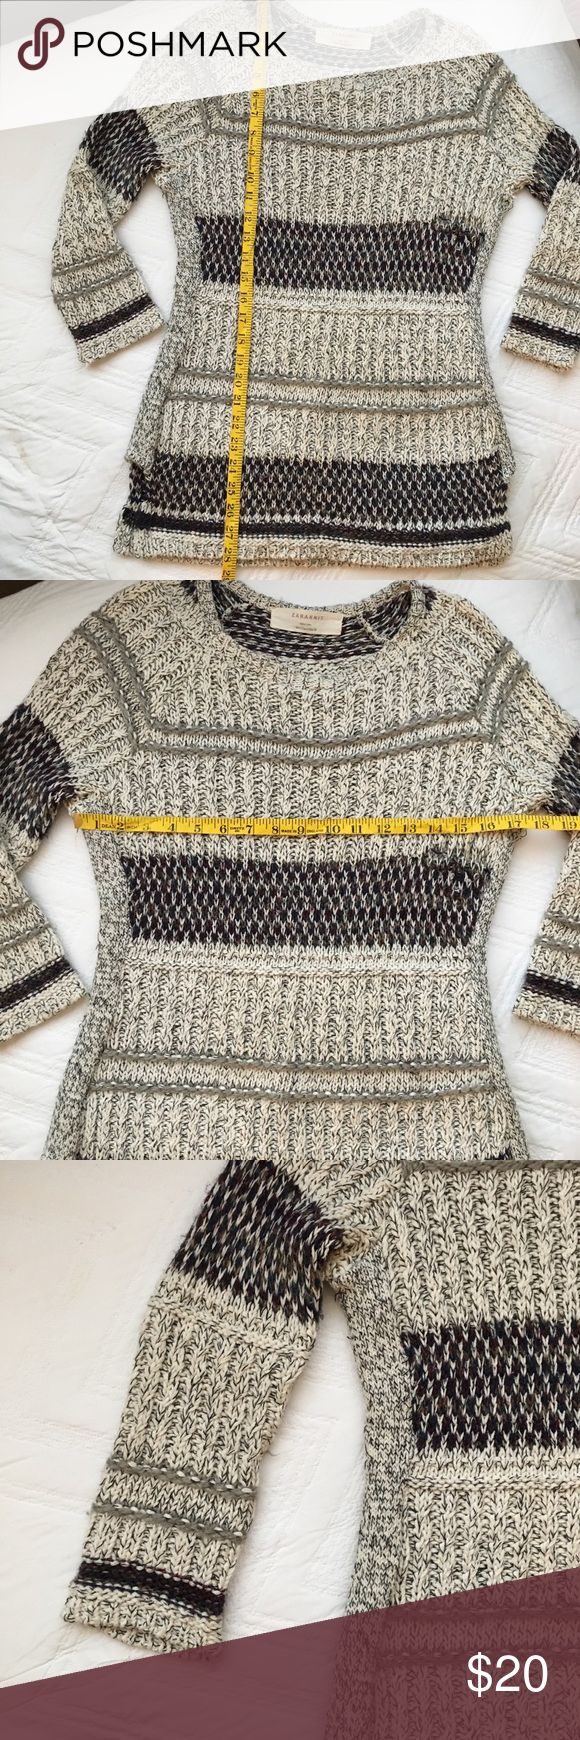 💎FREE(see details) Zara Knit sweater There is an hole/area of pulling in the stitches, see photos. Could be sewn to fix. See photos for measurements and materials. Size says large but it runs small, listed as medium. 💎 WINTER CLEARANCE This item applies for freebie bundle deal. Item will be shipped free with full price bundle (at least 2 items) purchase. Once bundle has been purchased, comment on photo of item you would like to add for free 💎 Zara Sweaters